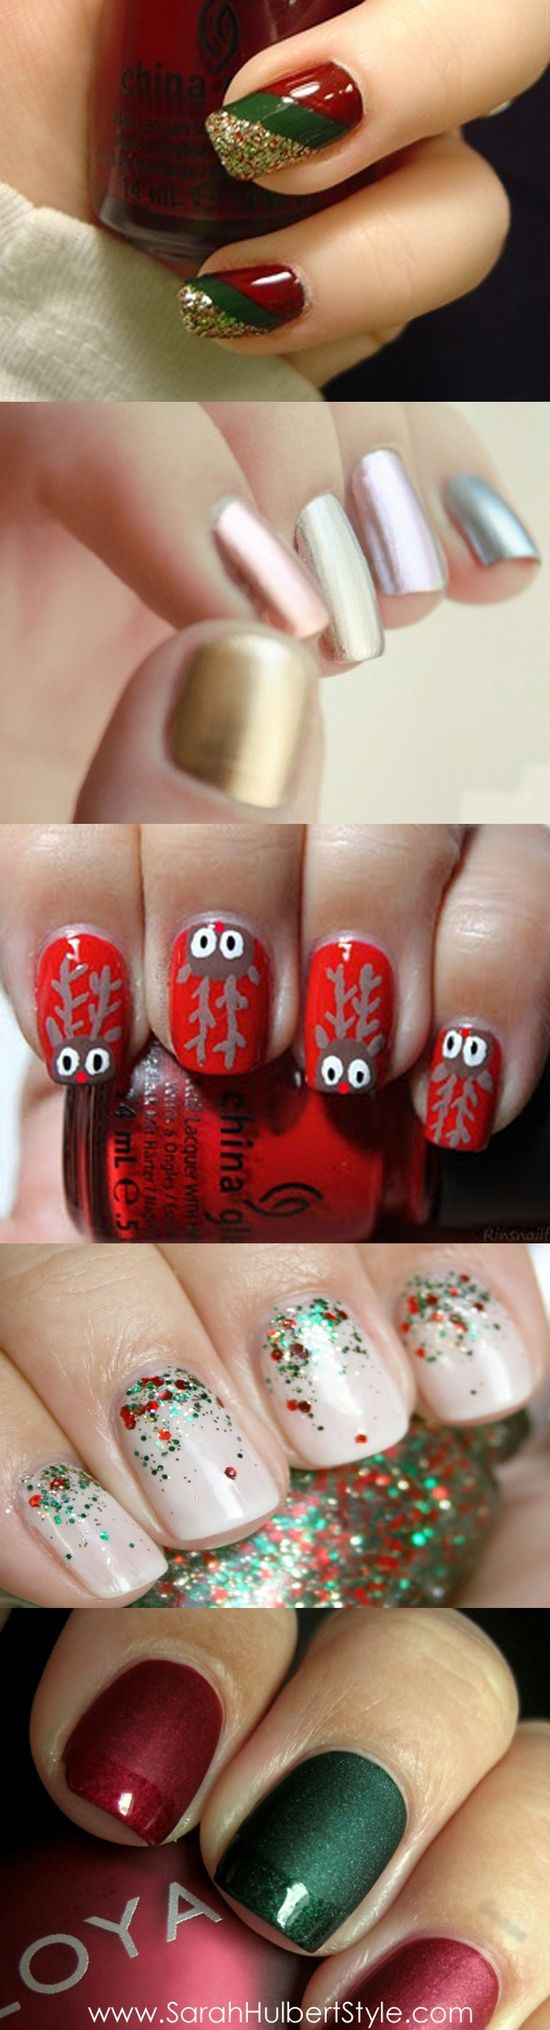 Beauty Christmas Themed Nail Design Christmas Nails Nails